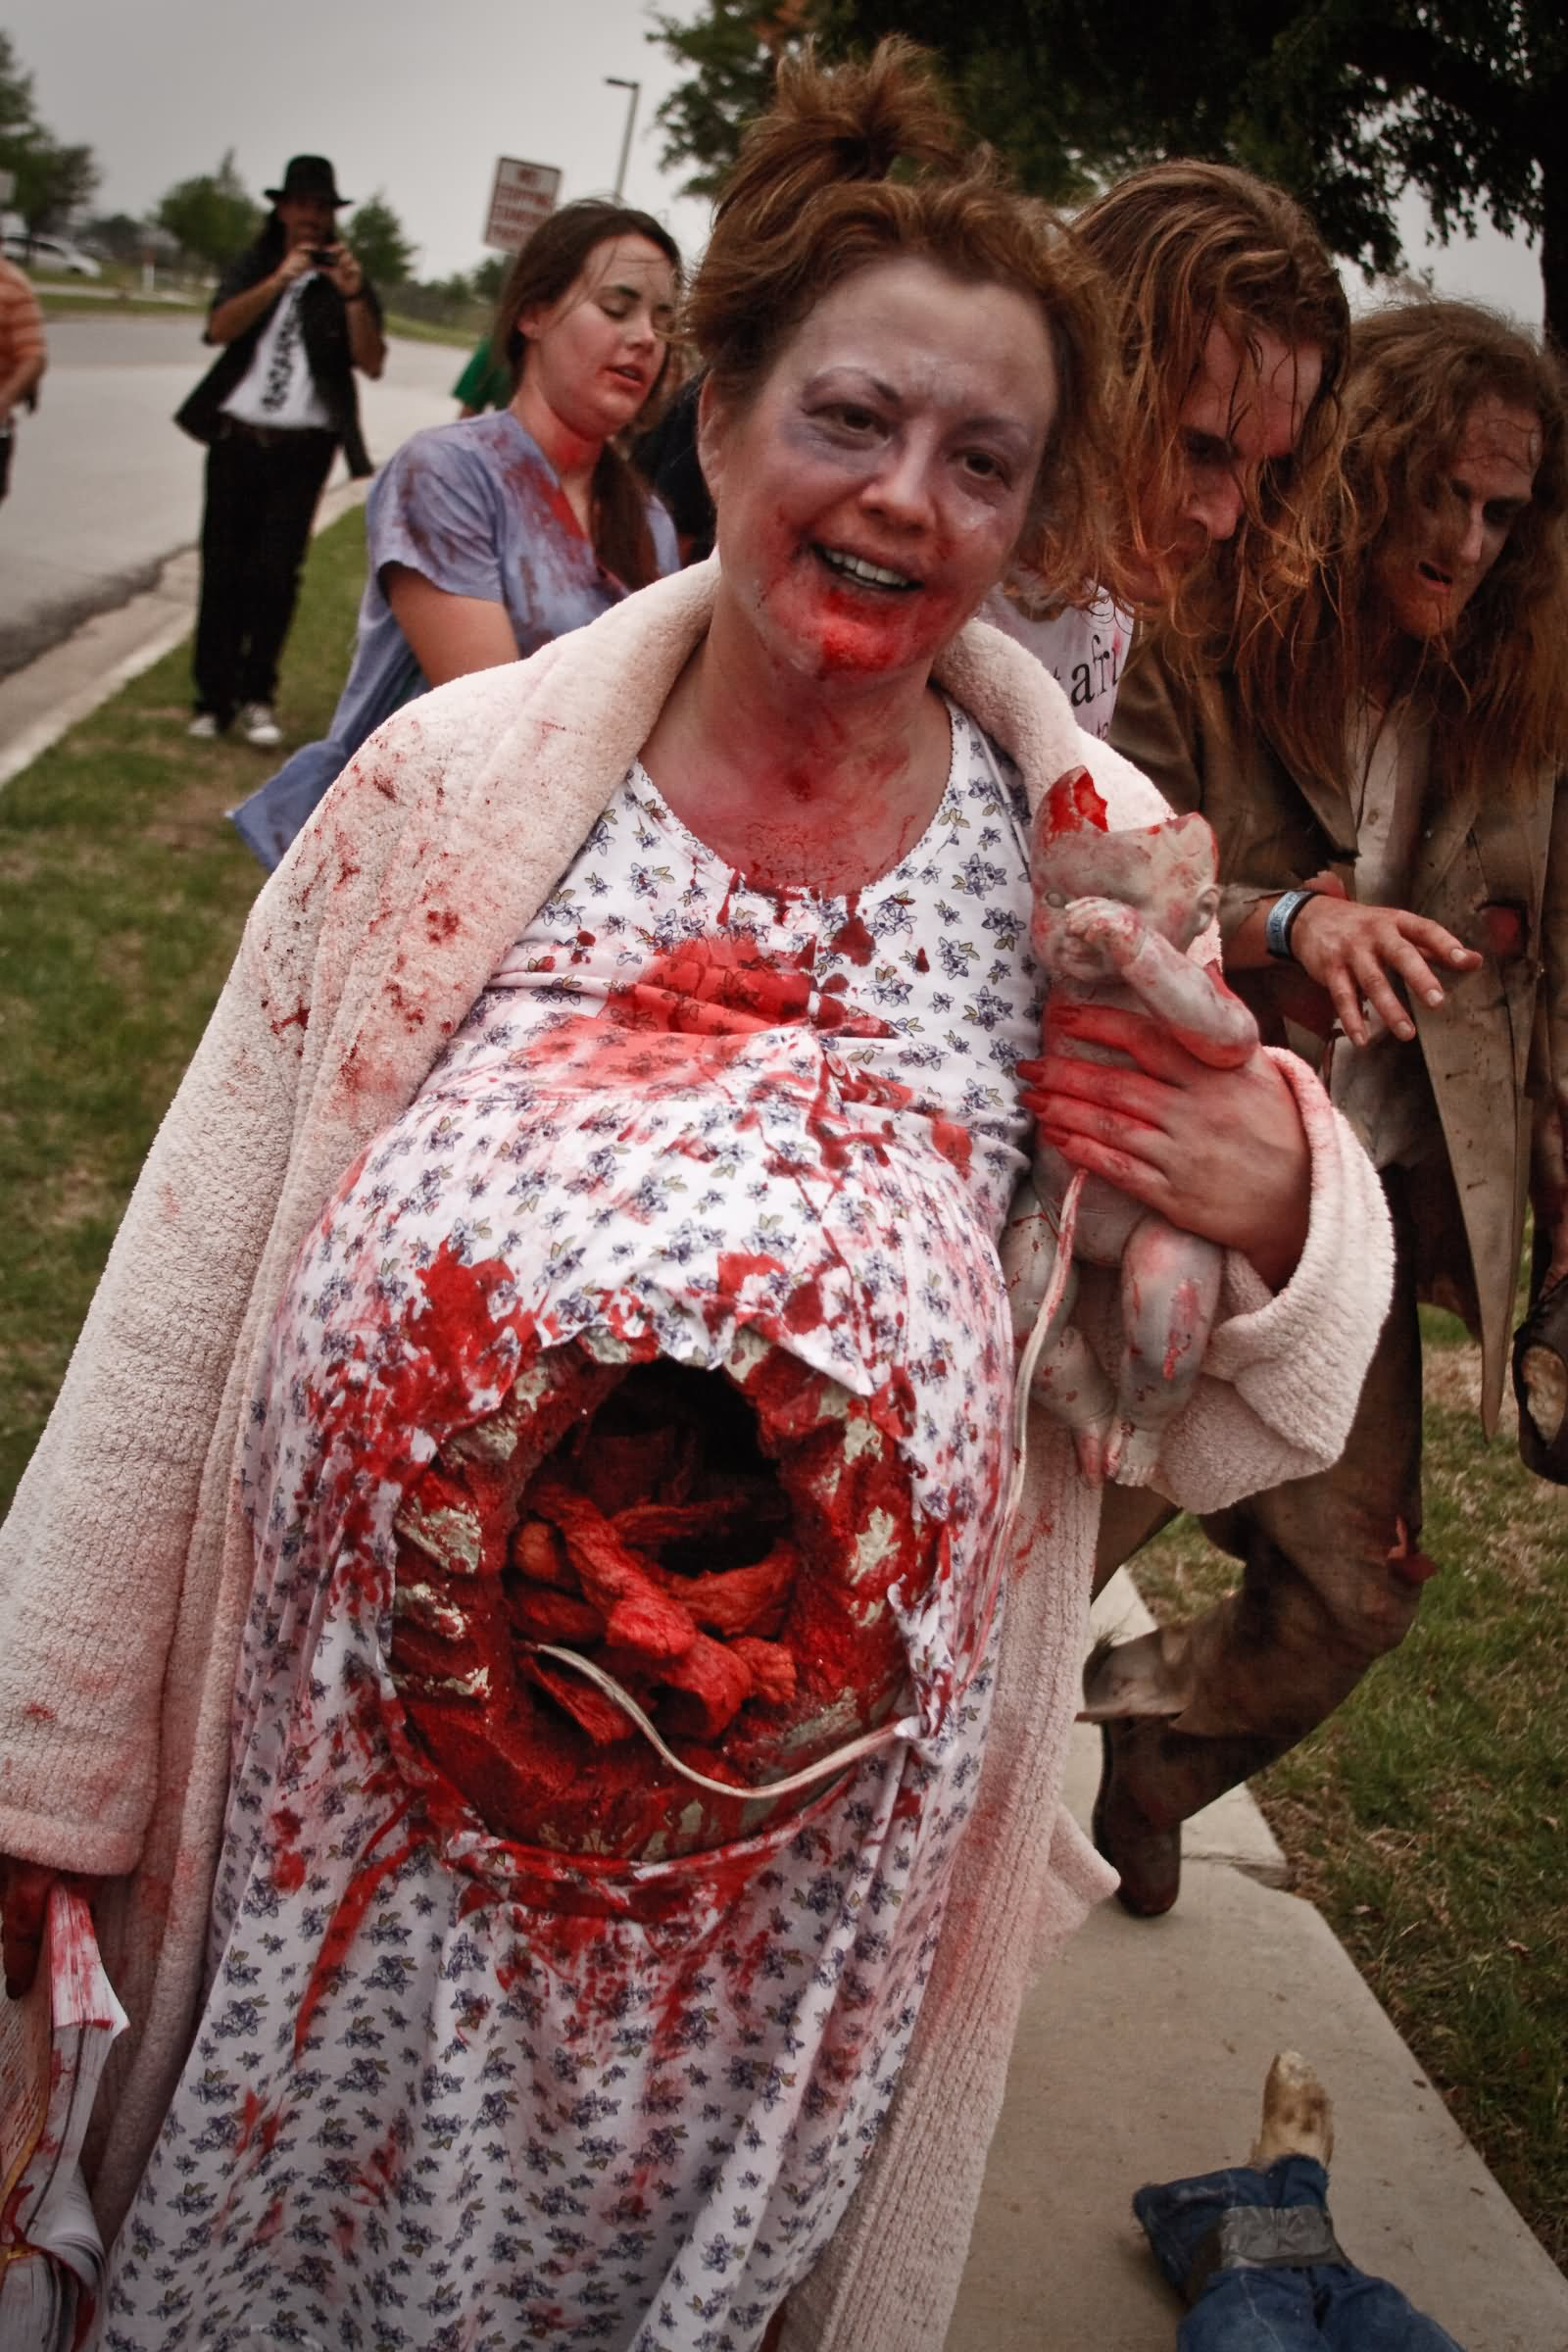 30 Most Funniest Zombie Costume Pictures Of All The Time